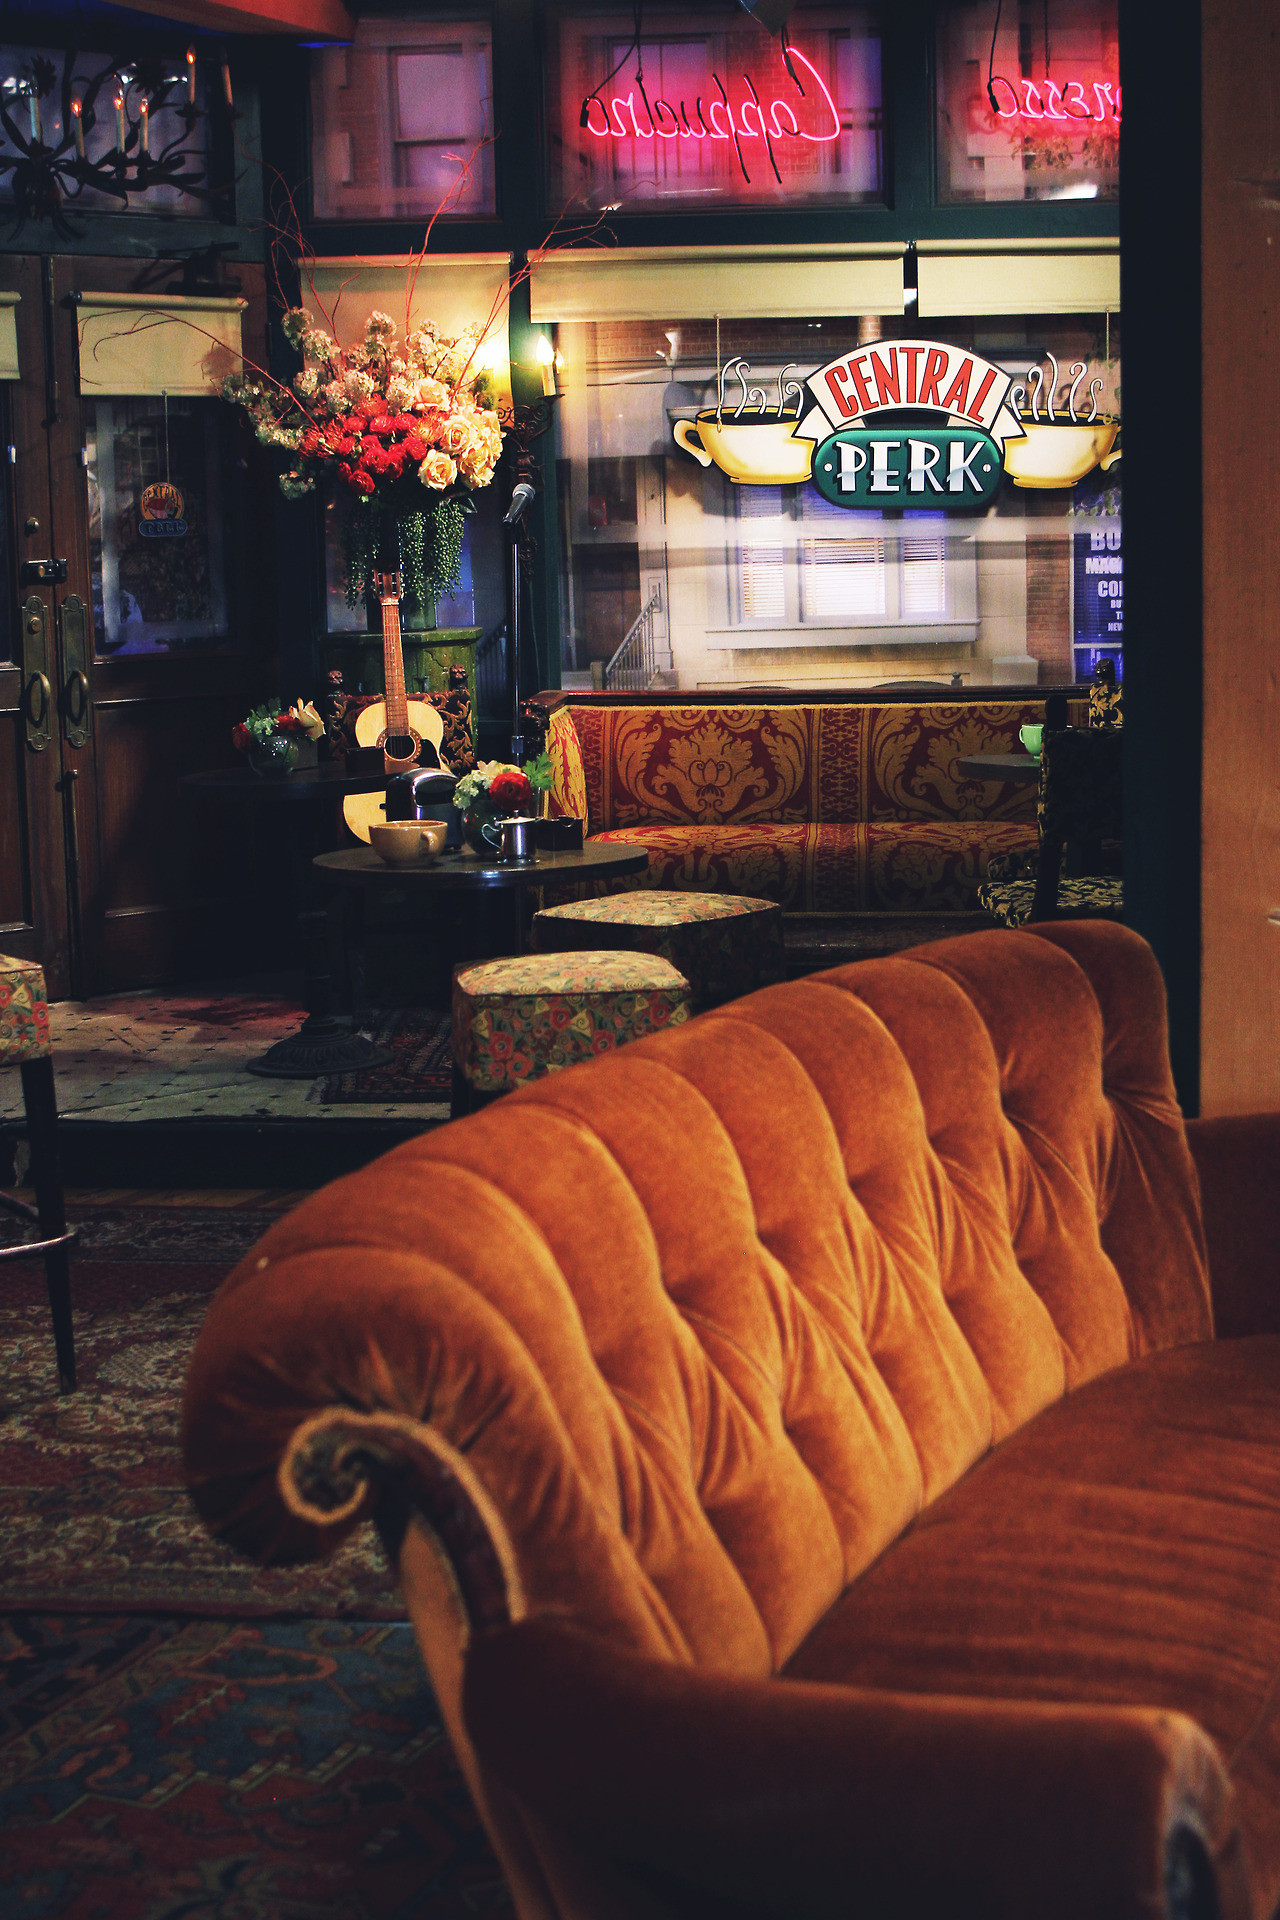 Friends Central Perk Wallpapers 67 Images